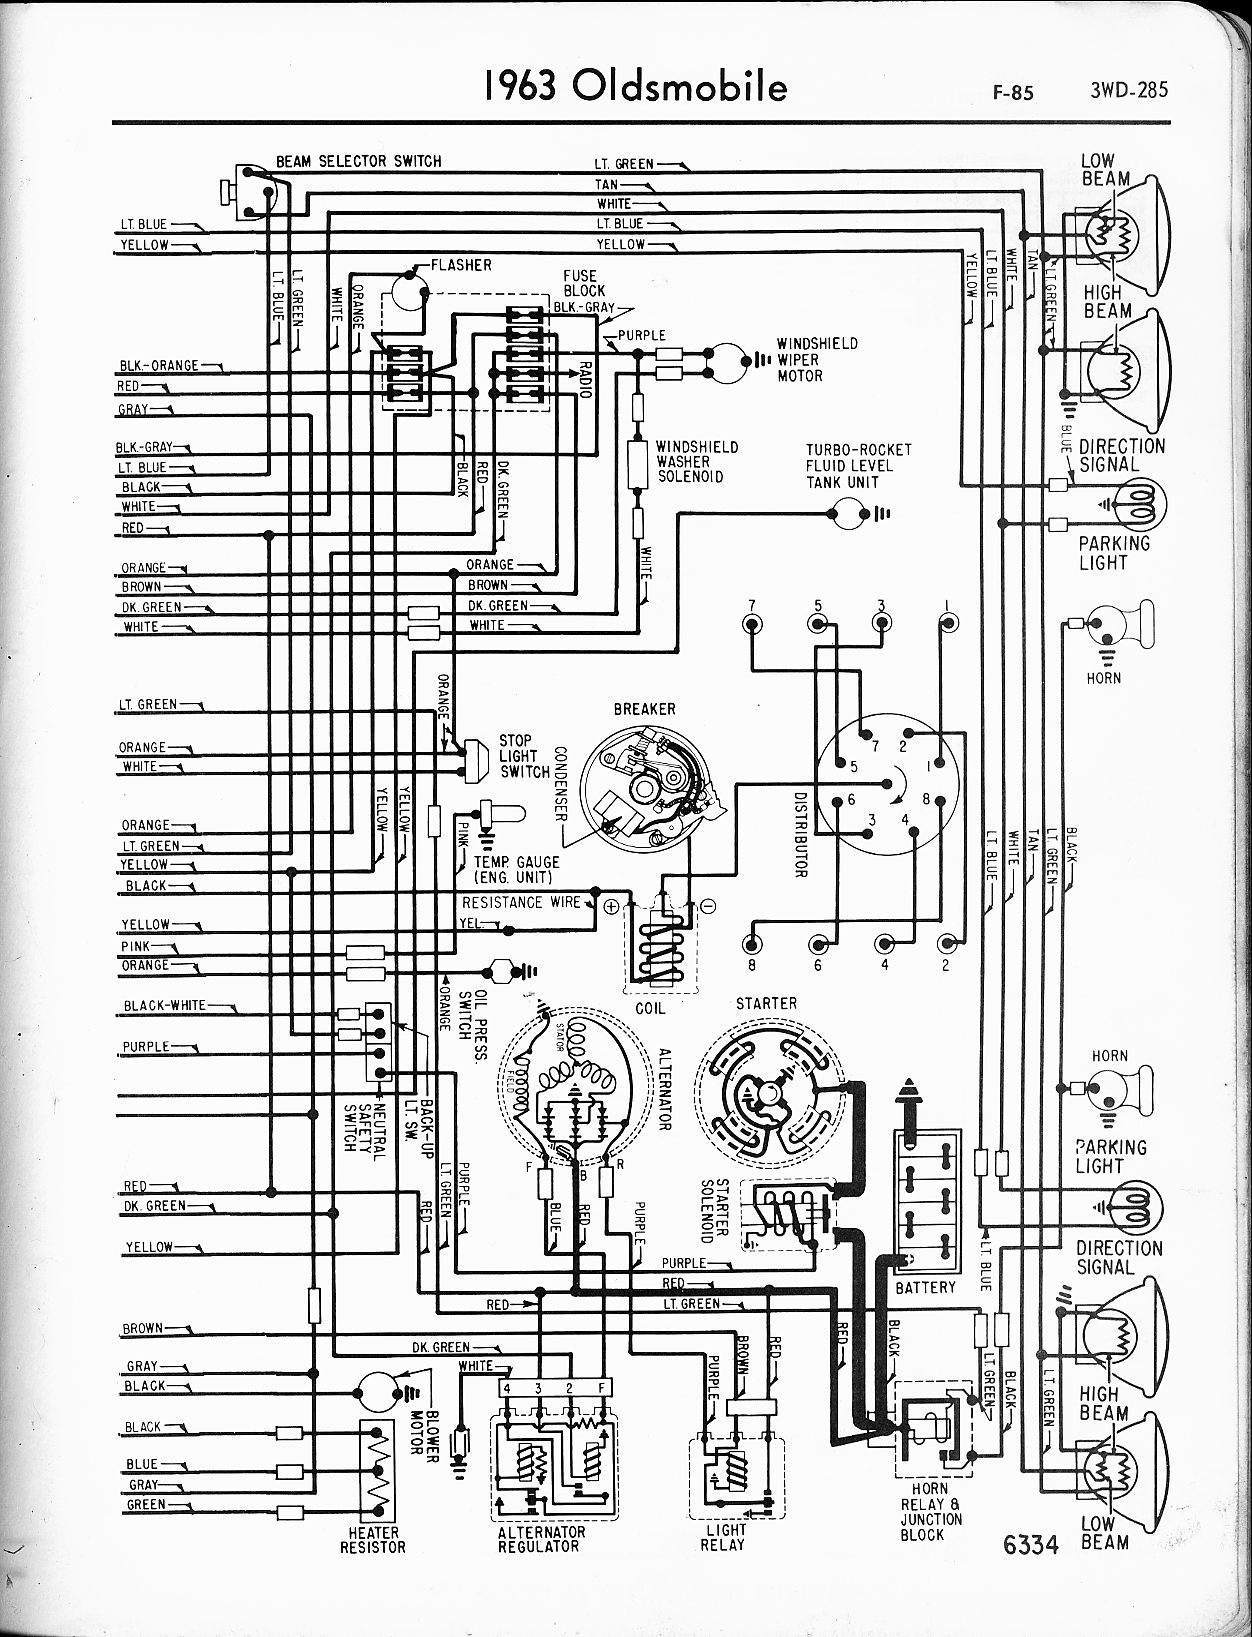 1998 oldsmobile wiring diagram diy enthusiasts wiring diagrams u2022 rh okdrywall co oldsmobile 88 radio wiring diagram 1994 oldsmobile 88 wiring diagram